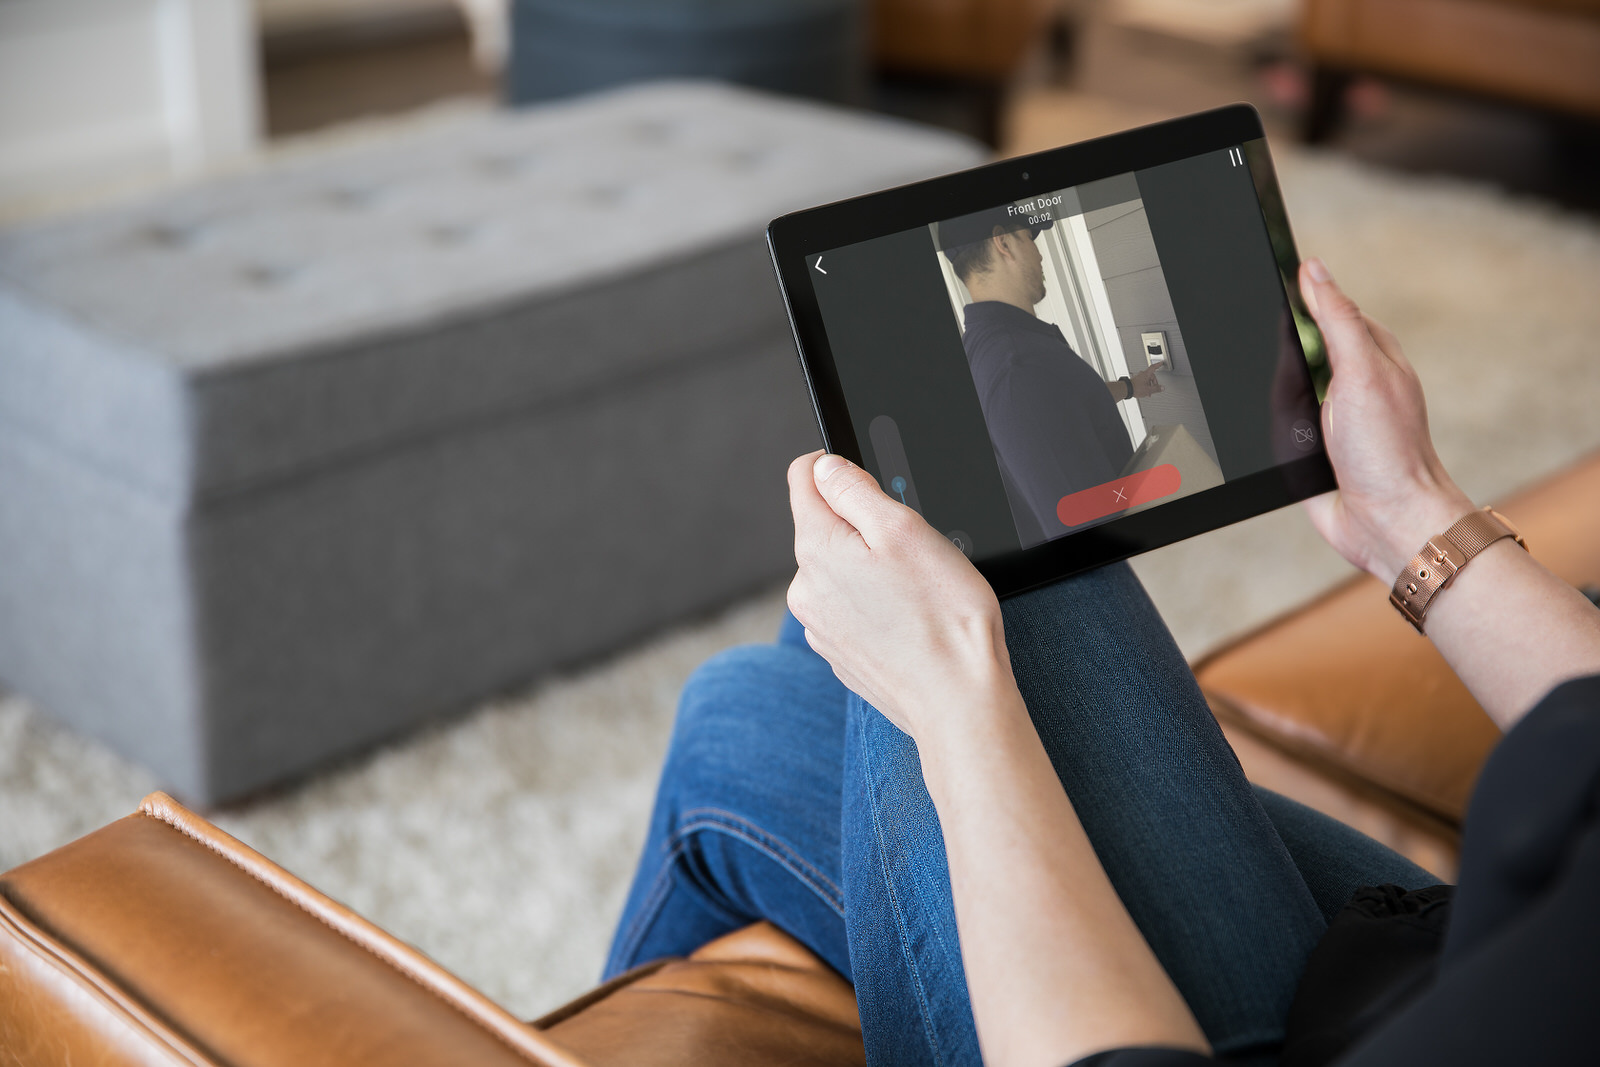 Video_Door_Bell_Entry_Man_Sitting_On_Brown_Leather_Sofa_Viewing_Front_Door_On_iPad